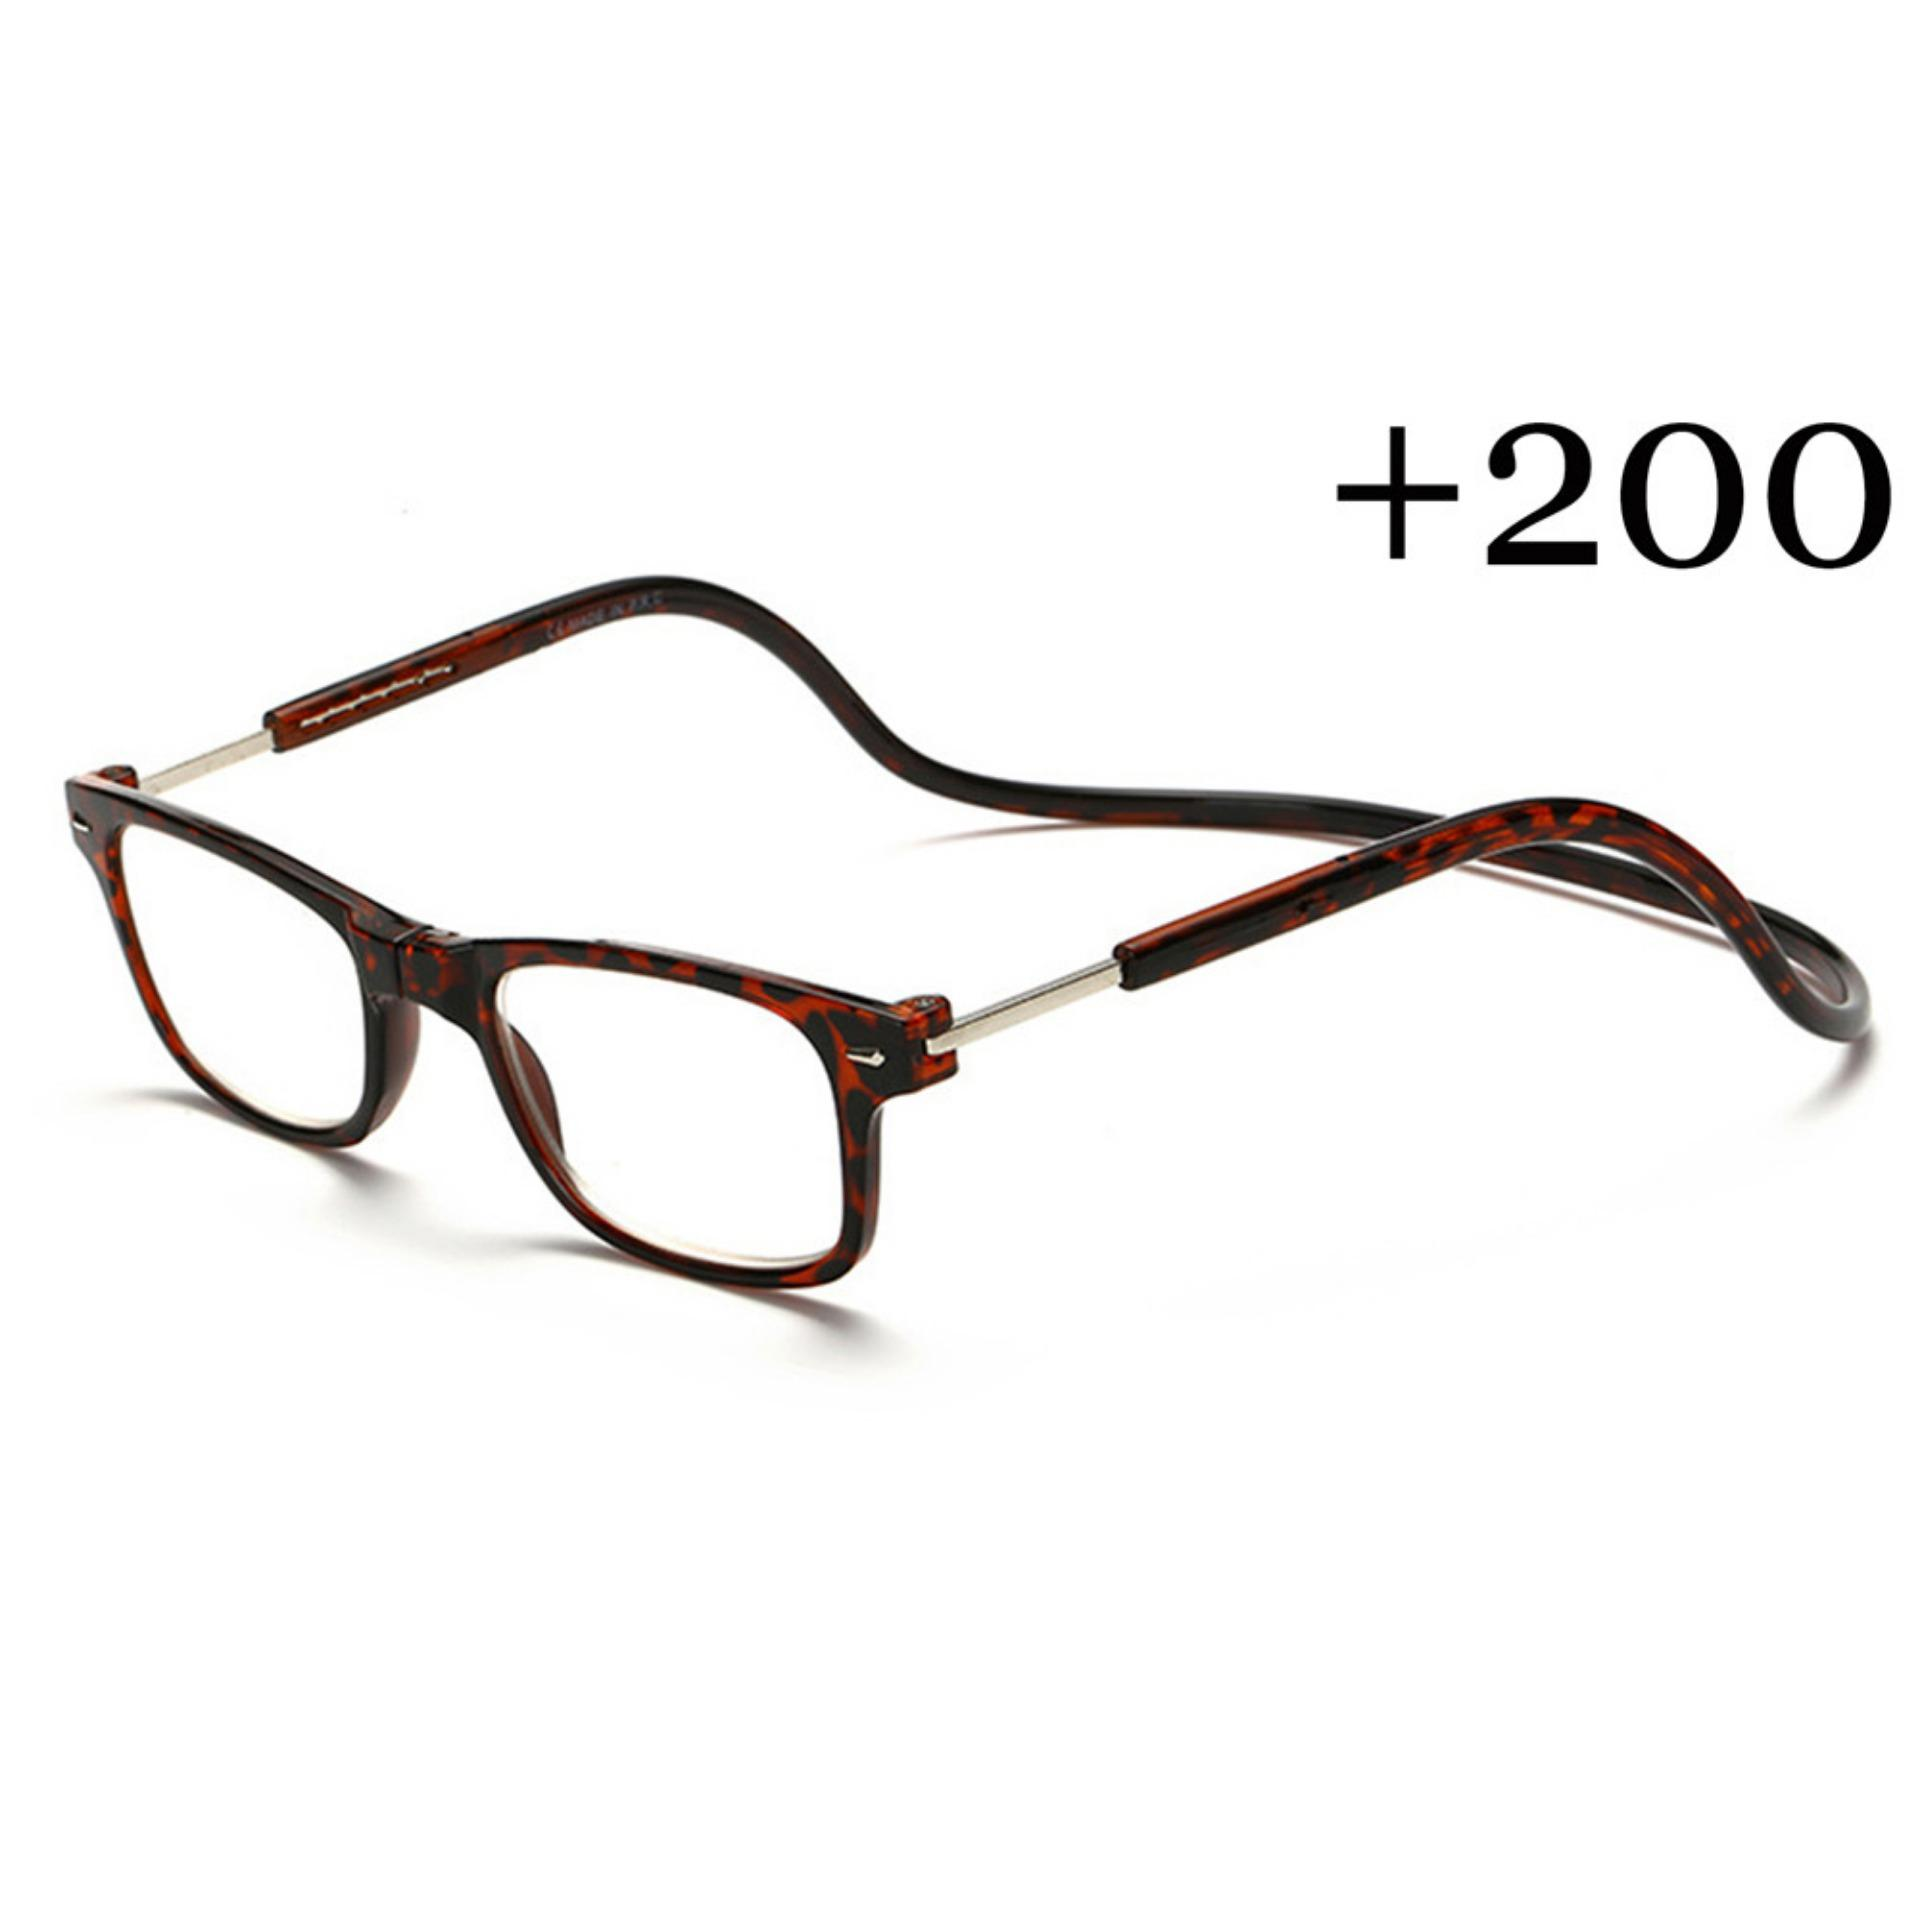 92450a040ac6 New Magnetic Folding Readers Reading Glasses +2.00 Neck Hang Unisex Leopard  - intl